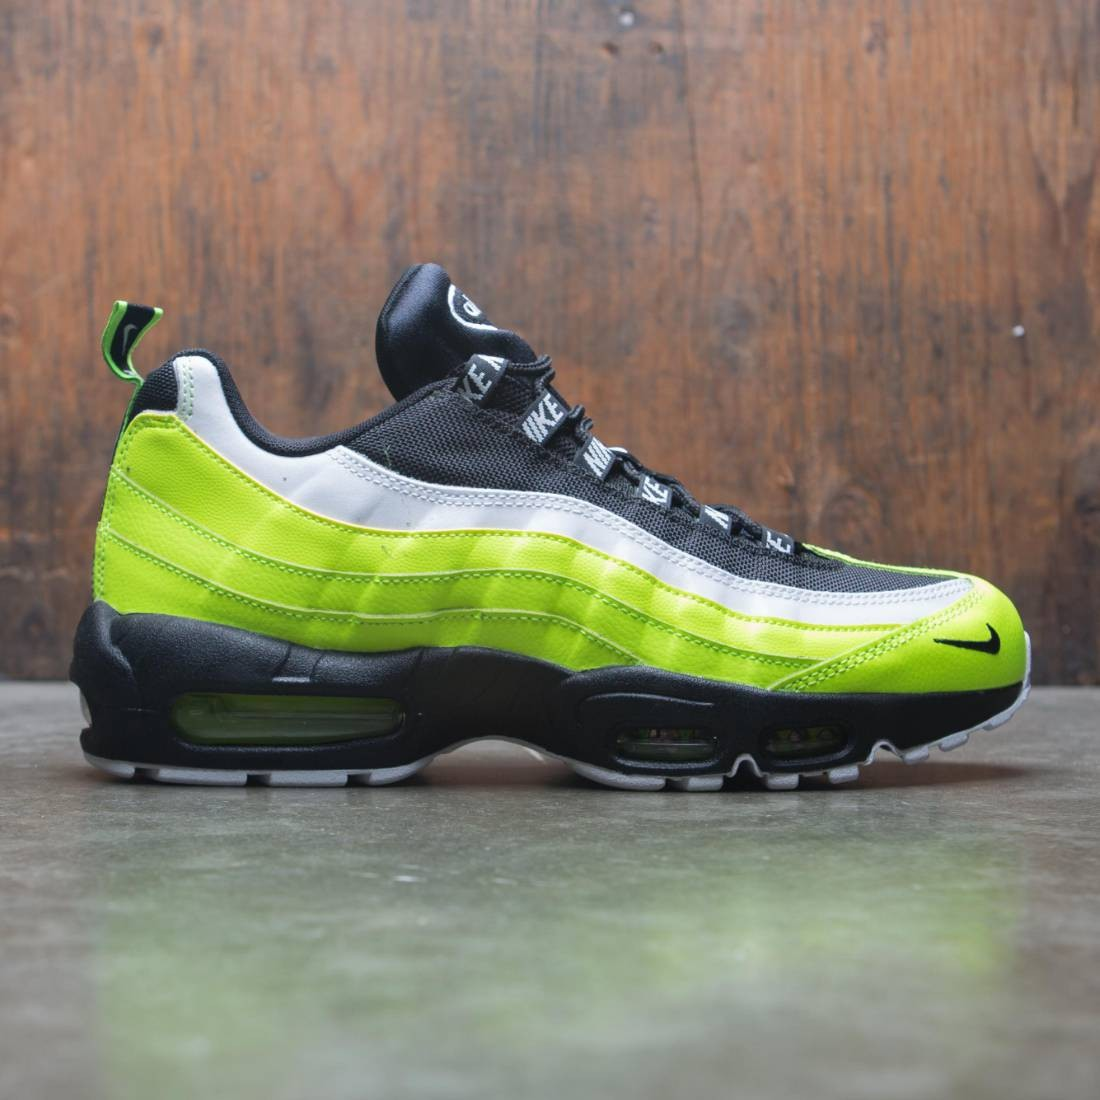 on sale 913b3 23a3a Nike Men Air Max 95 Premium (volt / black-volt glow-barely volt)